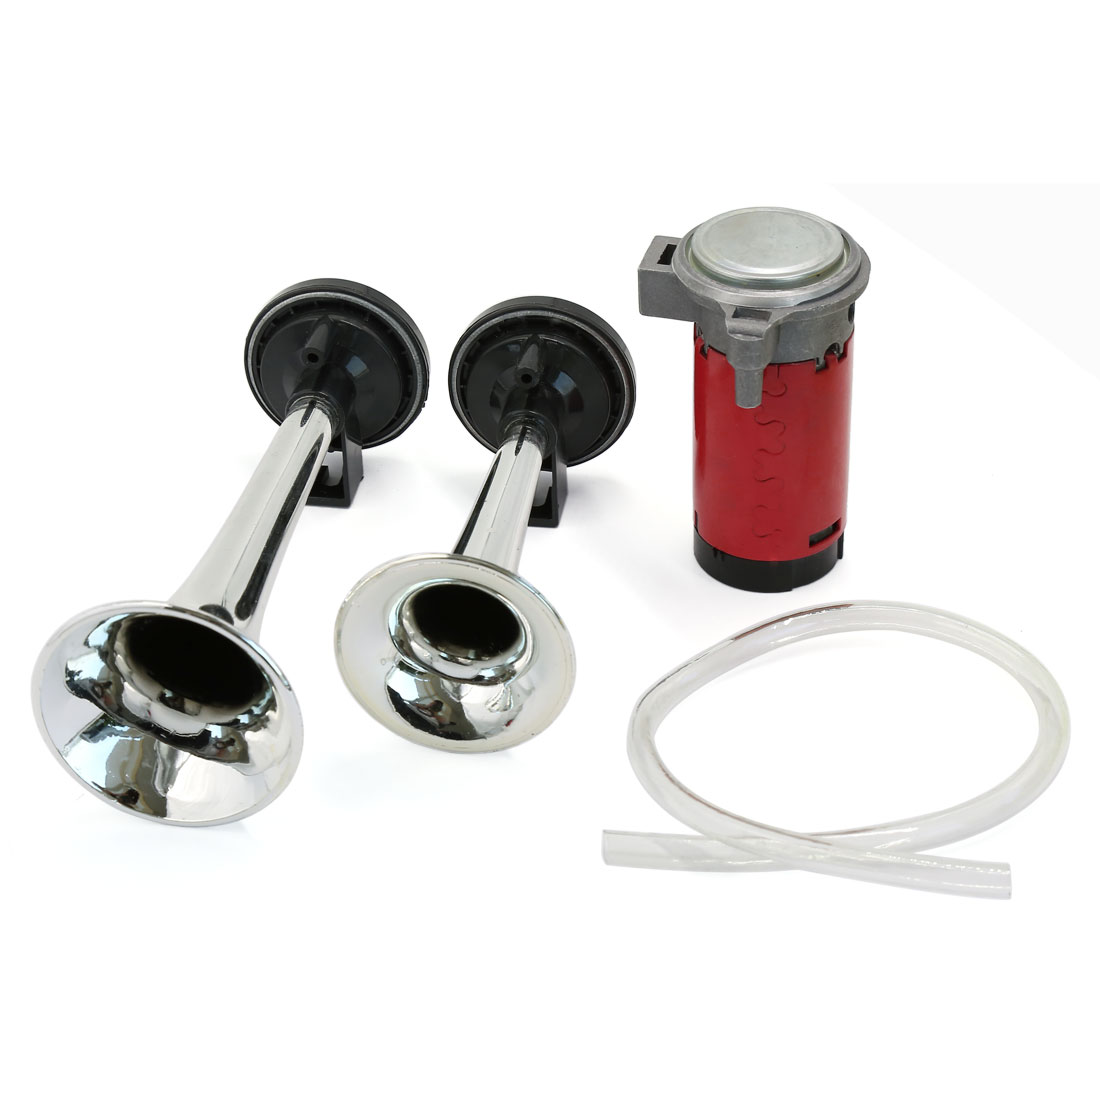 12V Chrome Dual Air Horn Trumpet Compressor Kit for Car Truck Boat Motorcycle